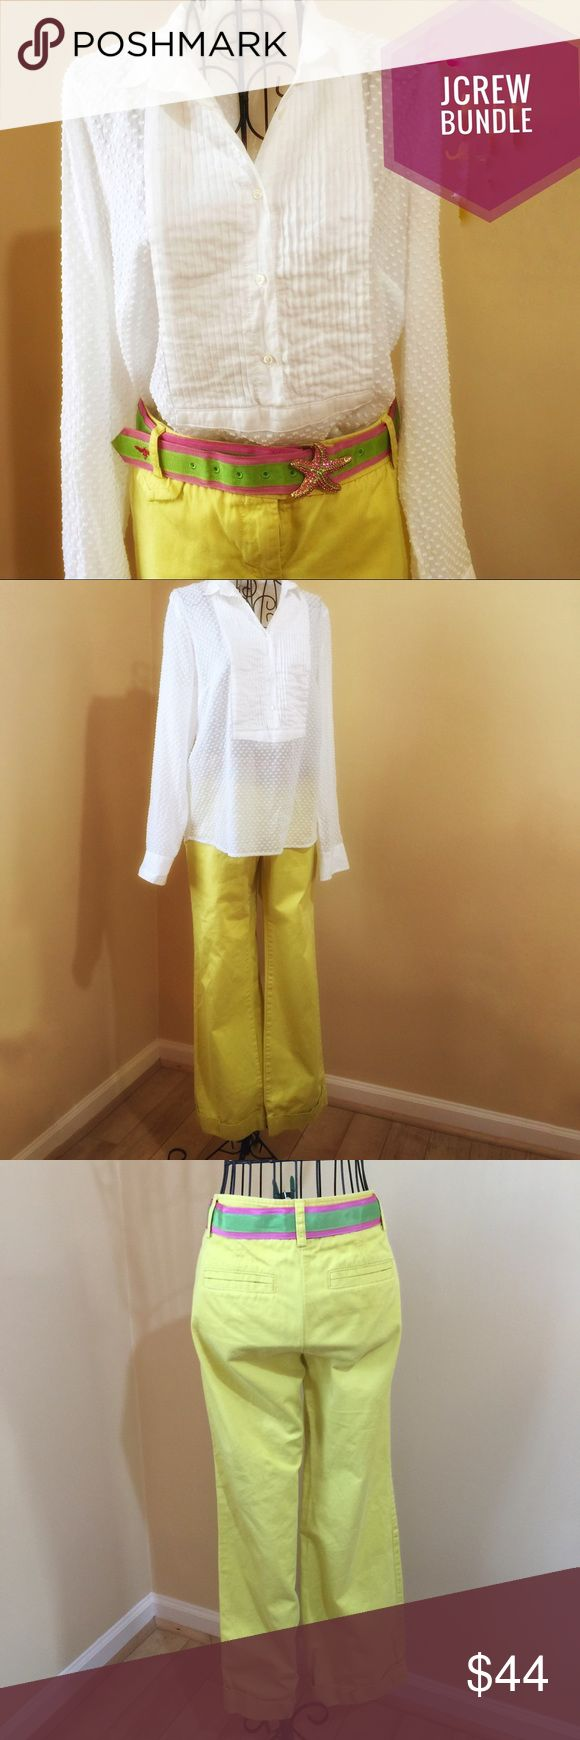 """J CREW BUNDLE JCREW Bundle. Summery Swiss-Dot tuxedo Cotton top, semi shear, crisp and airy. Chest 21"""", sleeve 23.5, length 25"""". Classic twill chino, weathered, city fit, pants . 100% Cotton. Gorgeous canary yellow, as shown in first photo. Waist 15.5"""", inseam 29.5"""", rise 9"""", wide 2"""" sewn in cuff. Both items, not Factory. Top size 6, pants size6p. Awesome STARFISH belt included,thank you for visiting. J. Crew Tops"""